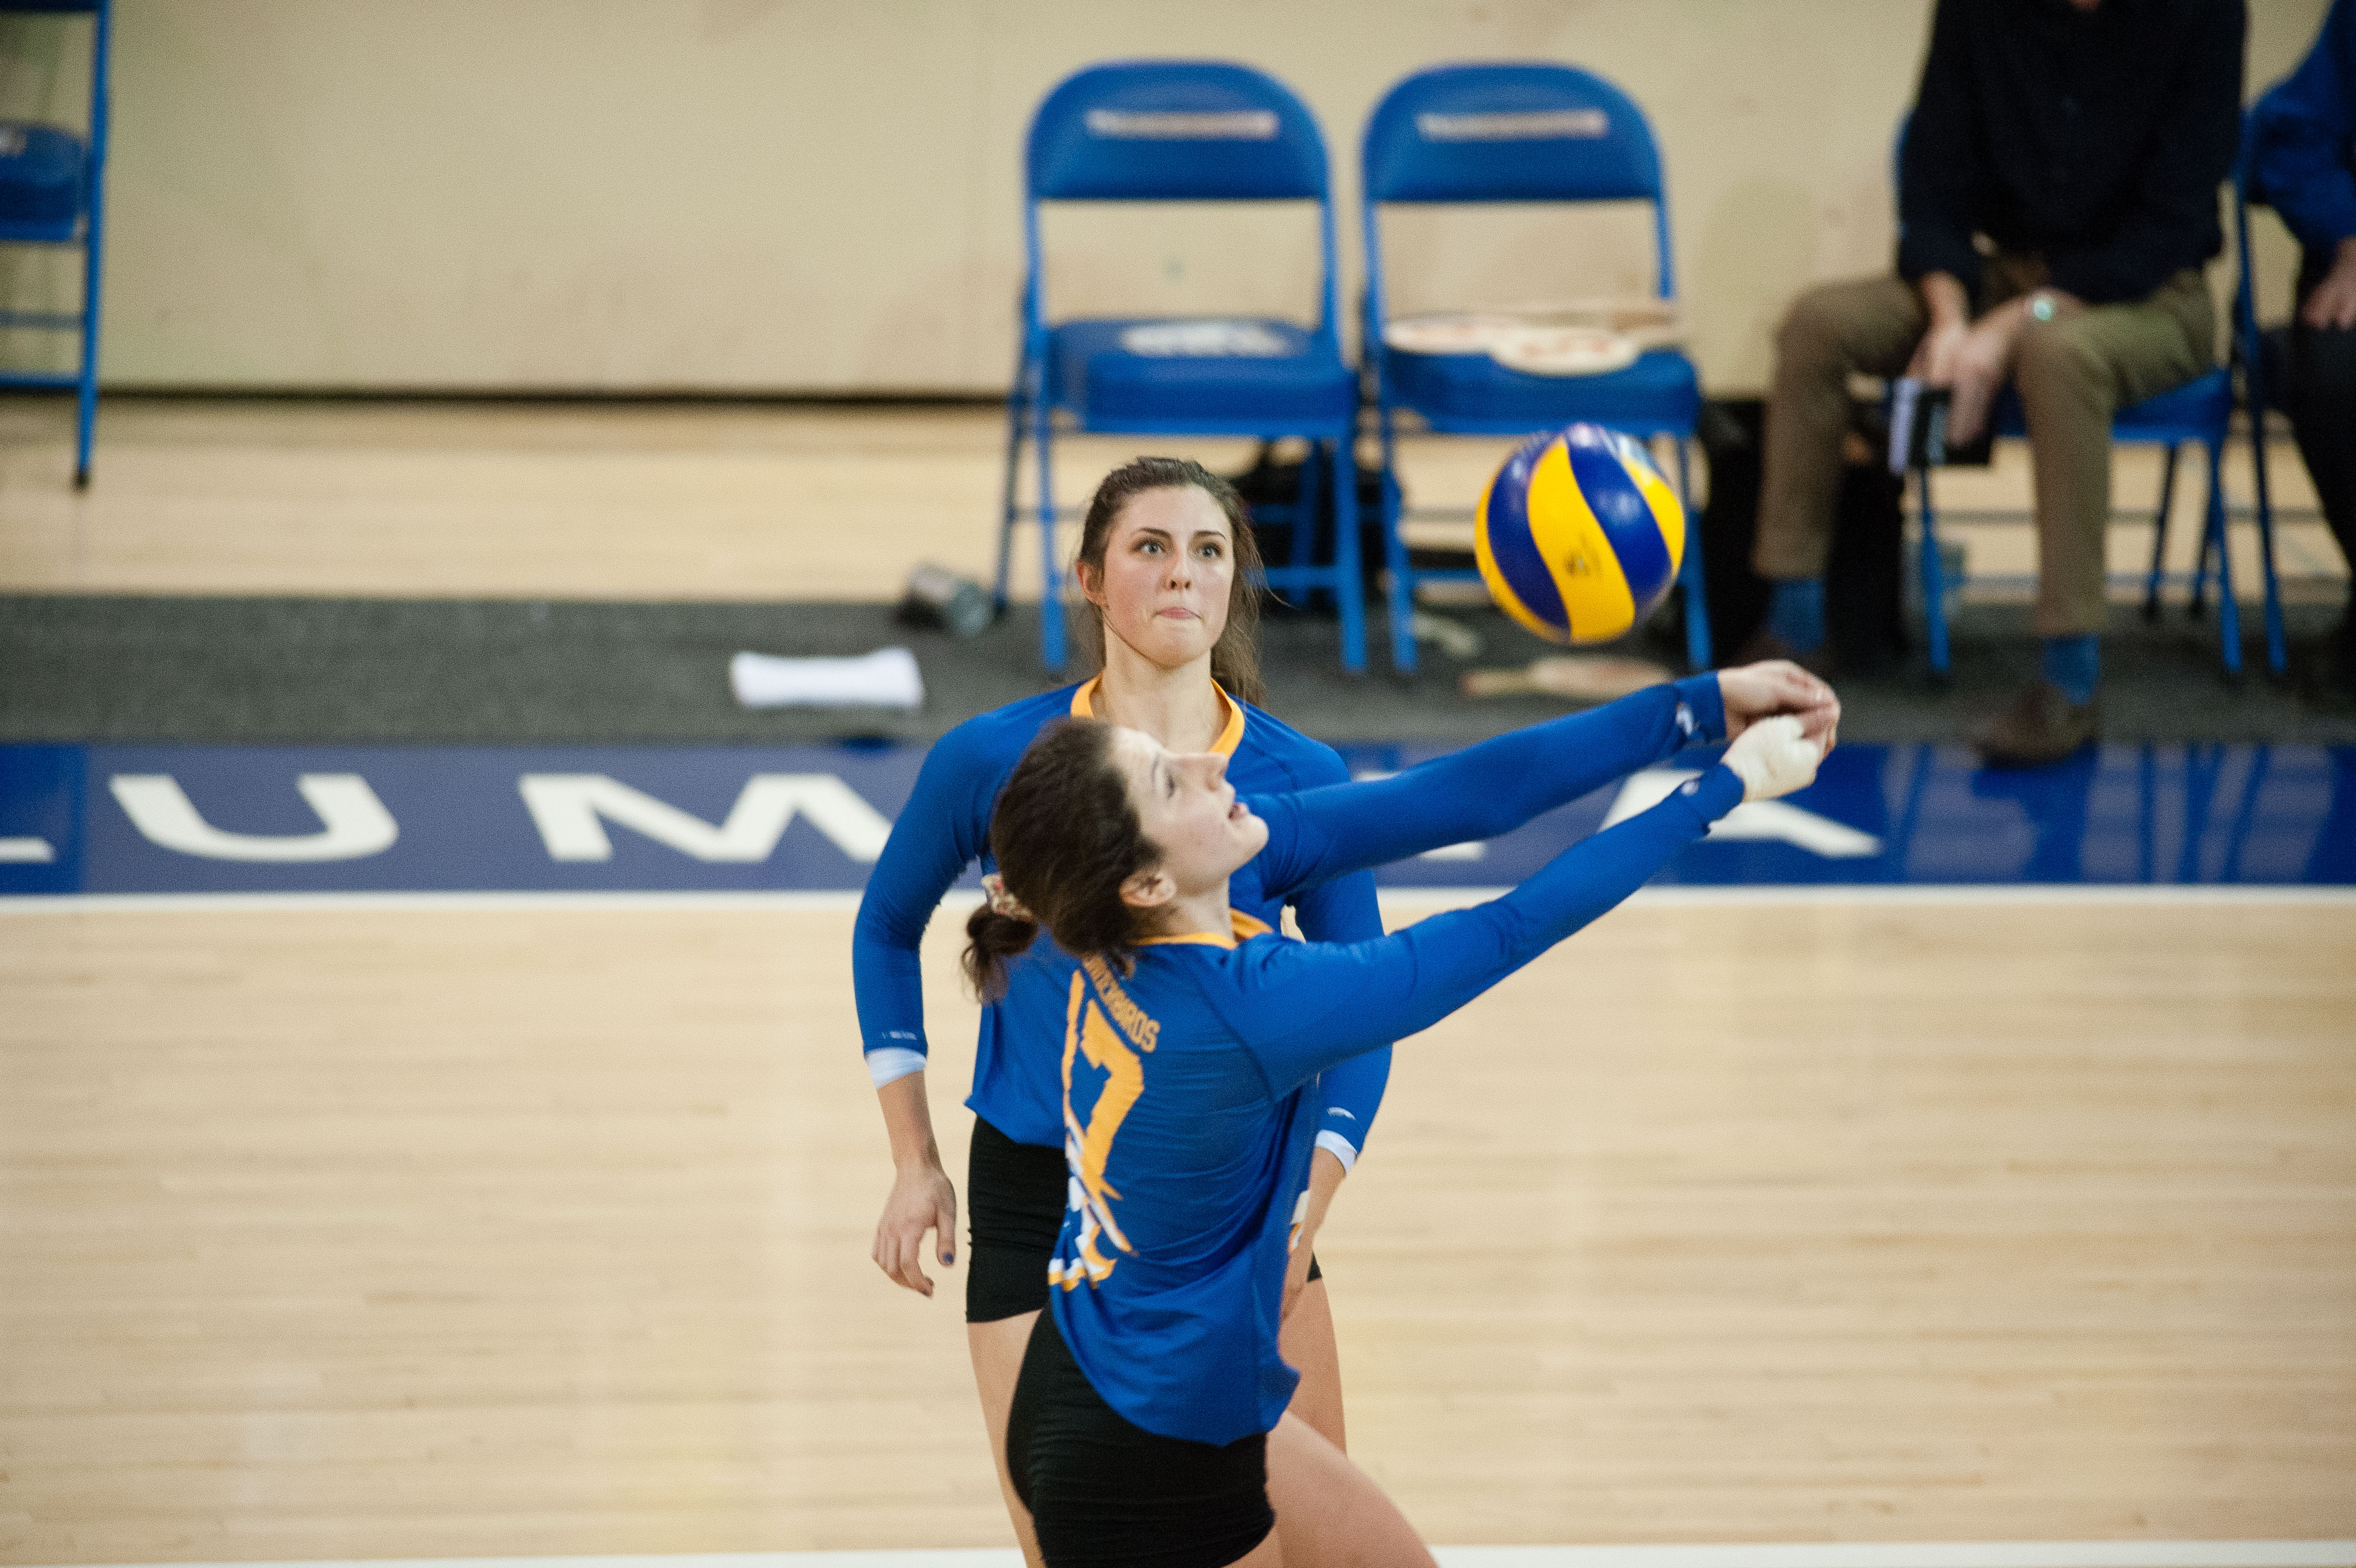 Alessandra Gentile bumps the ball for an oncoming Olivia Furlan play.